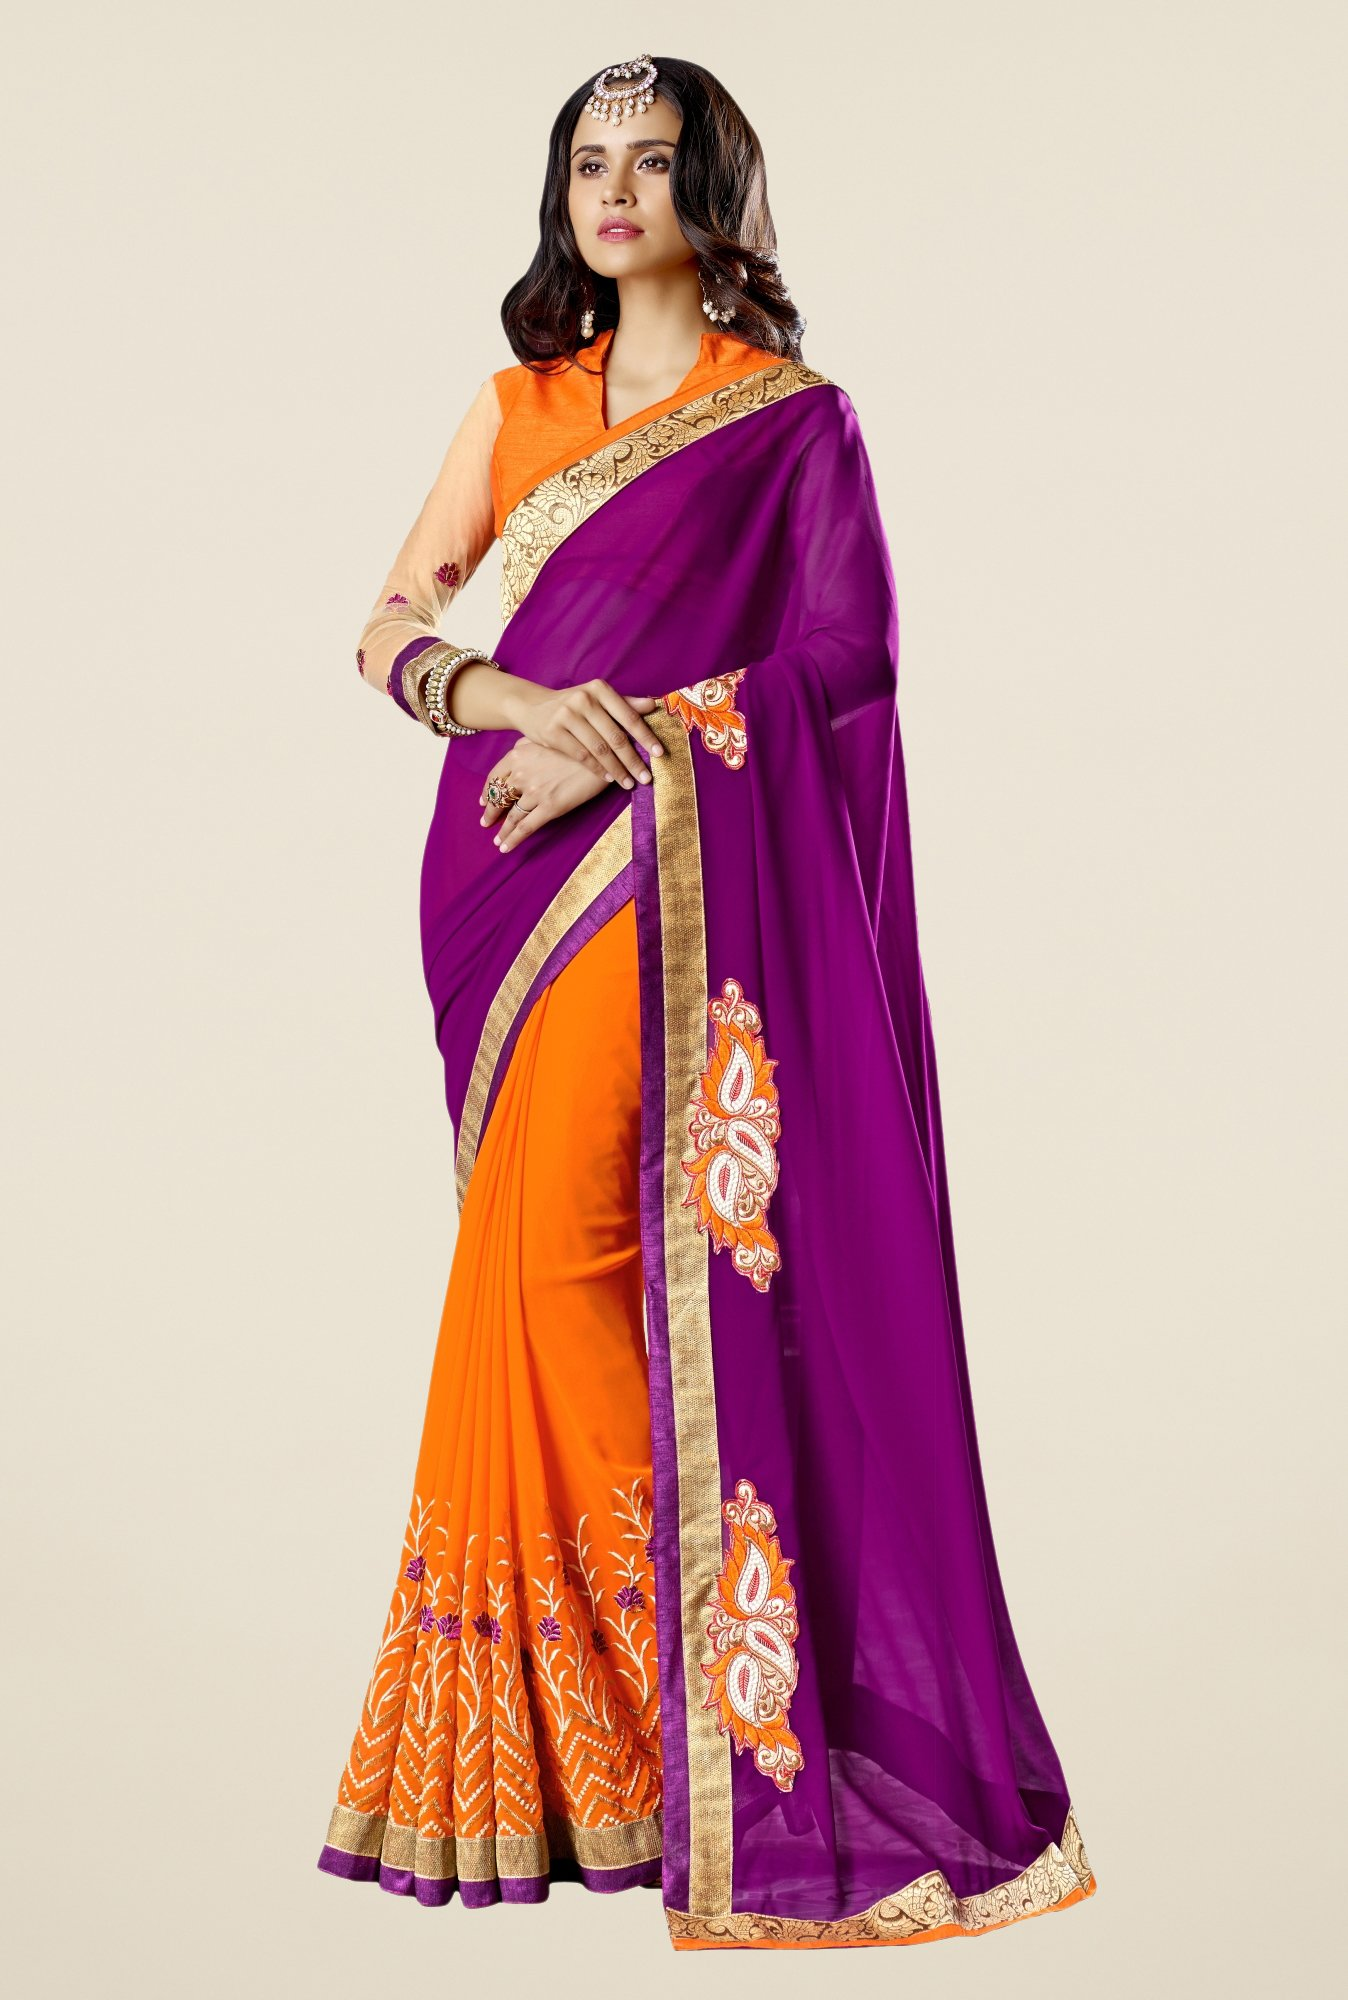 Triveni Orange Embroidered Faux Georgette Free Size Saree